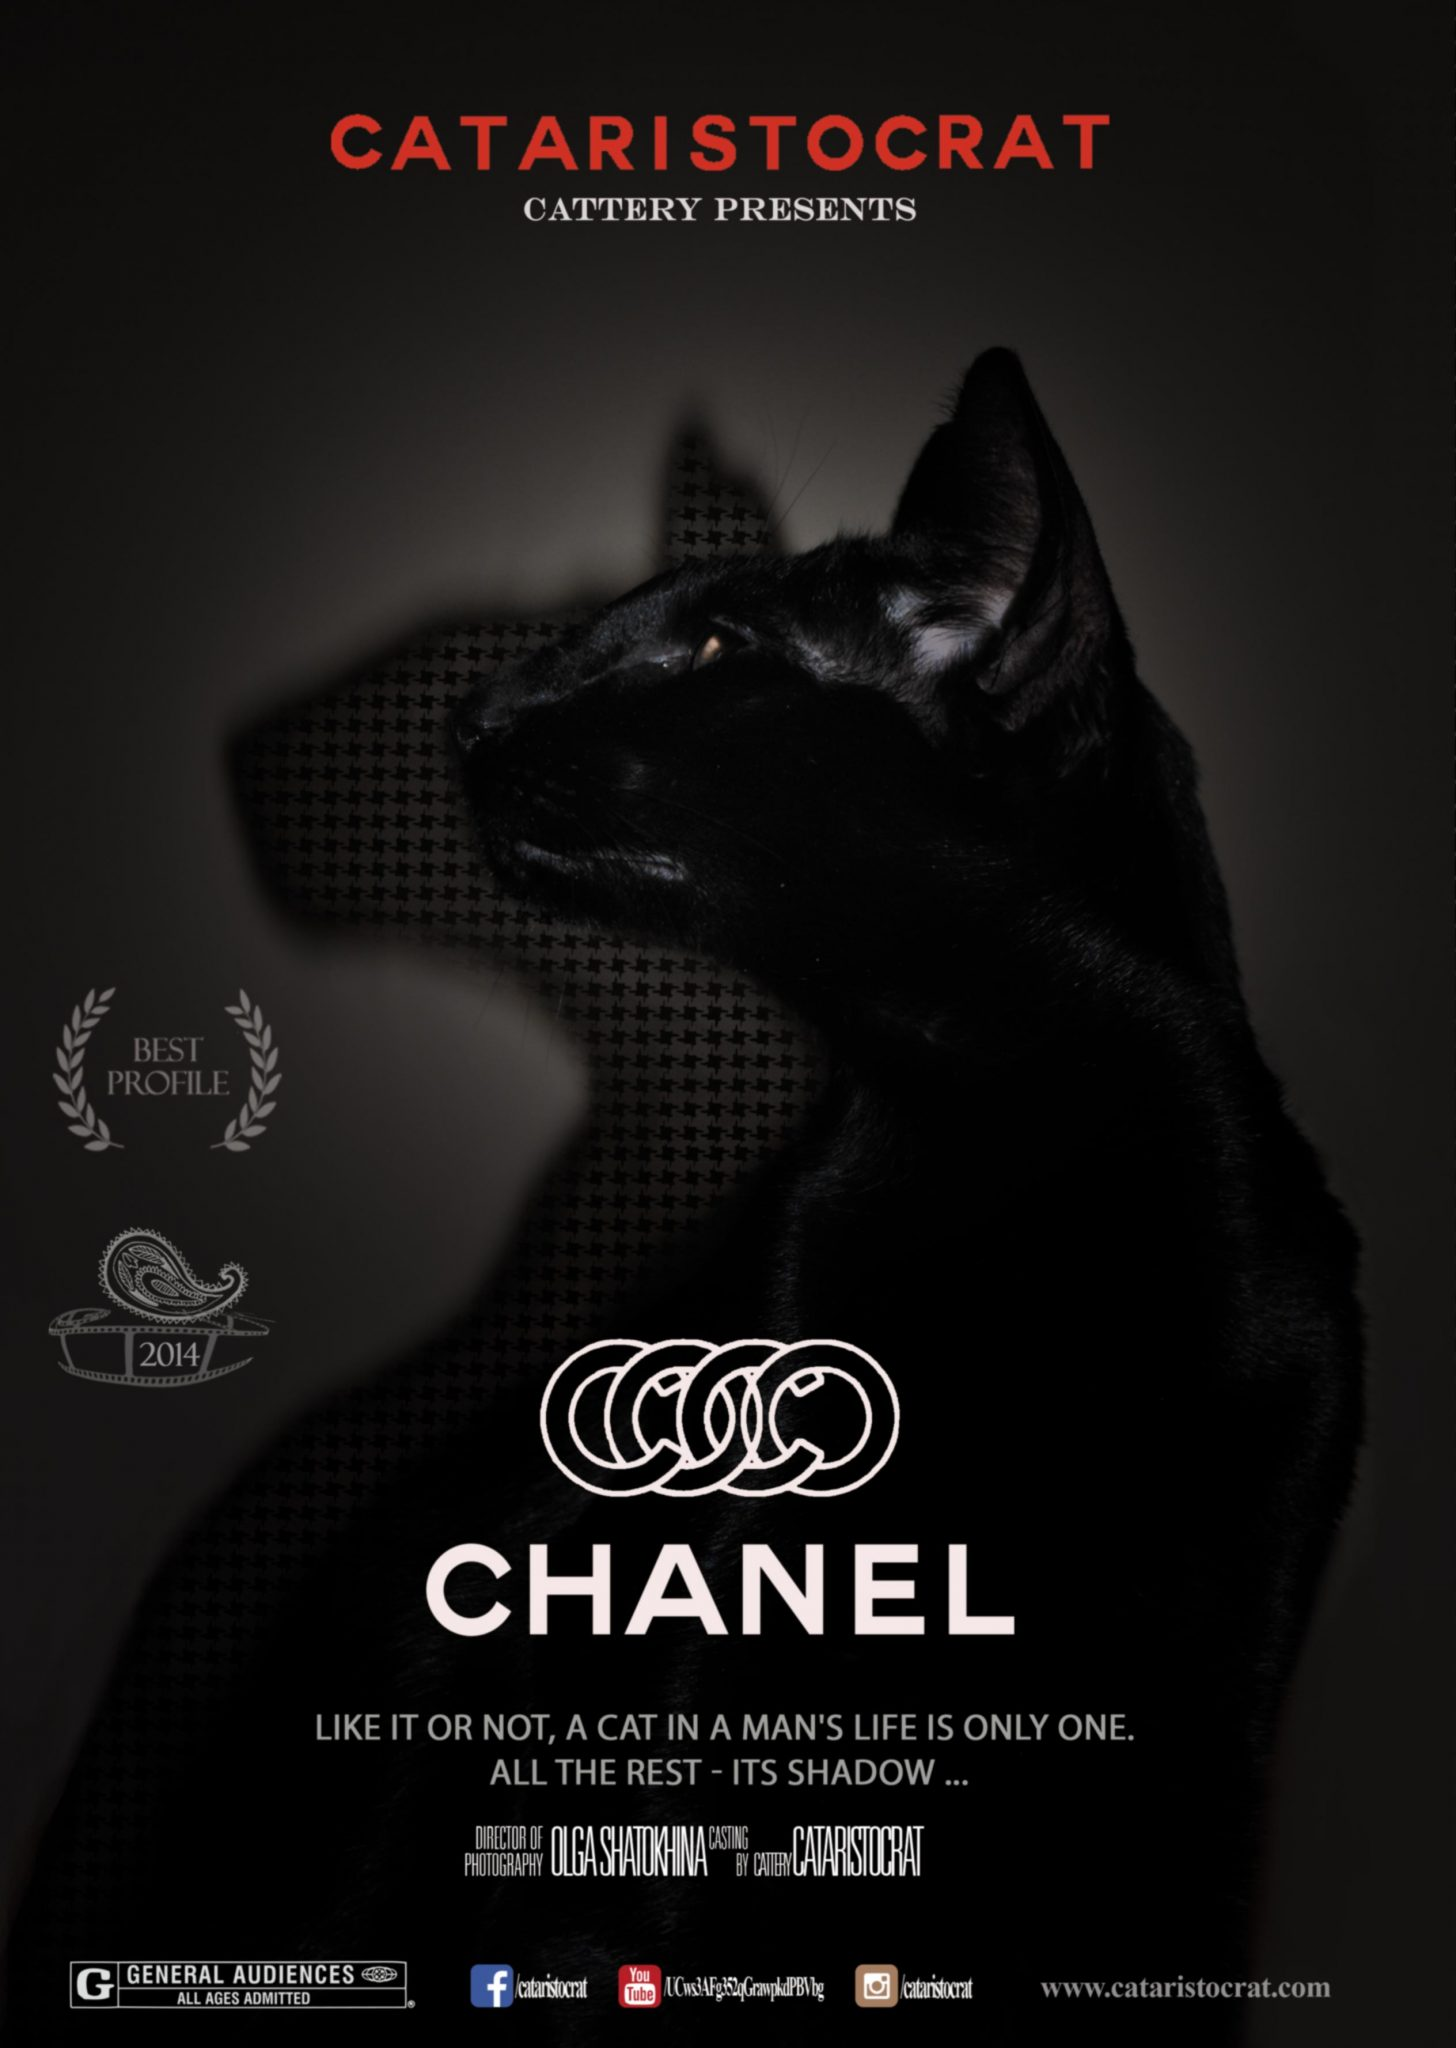 Chanel Oriental cat from Oriental cattery Cataristocrat, Movie-Poster